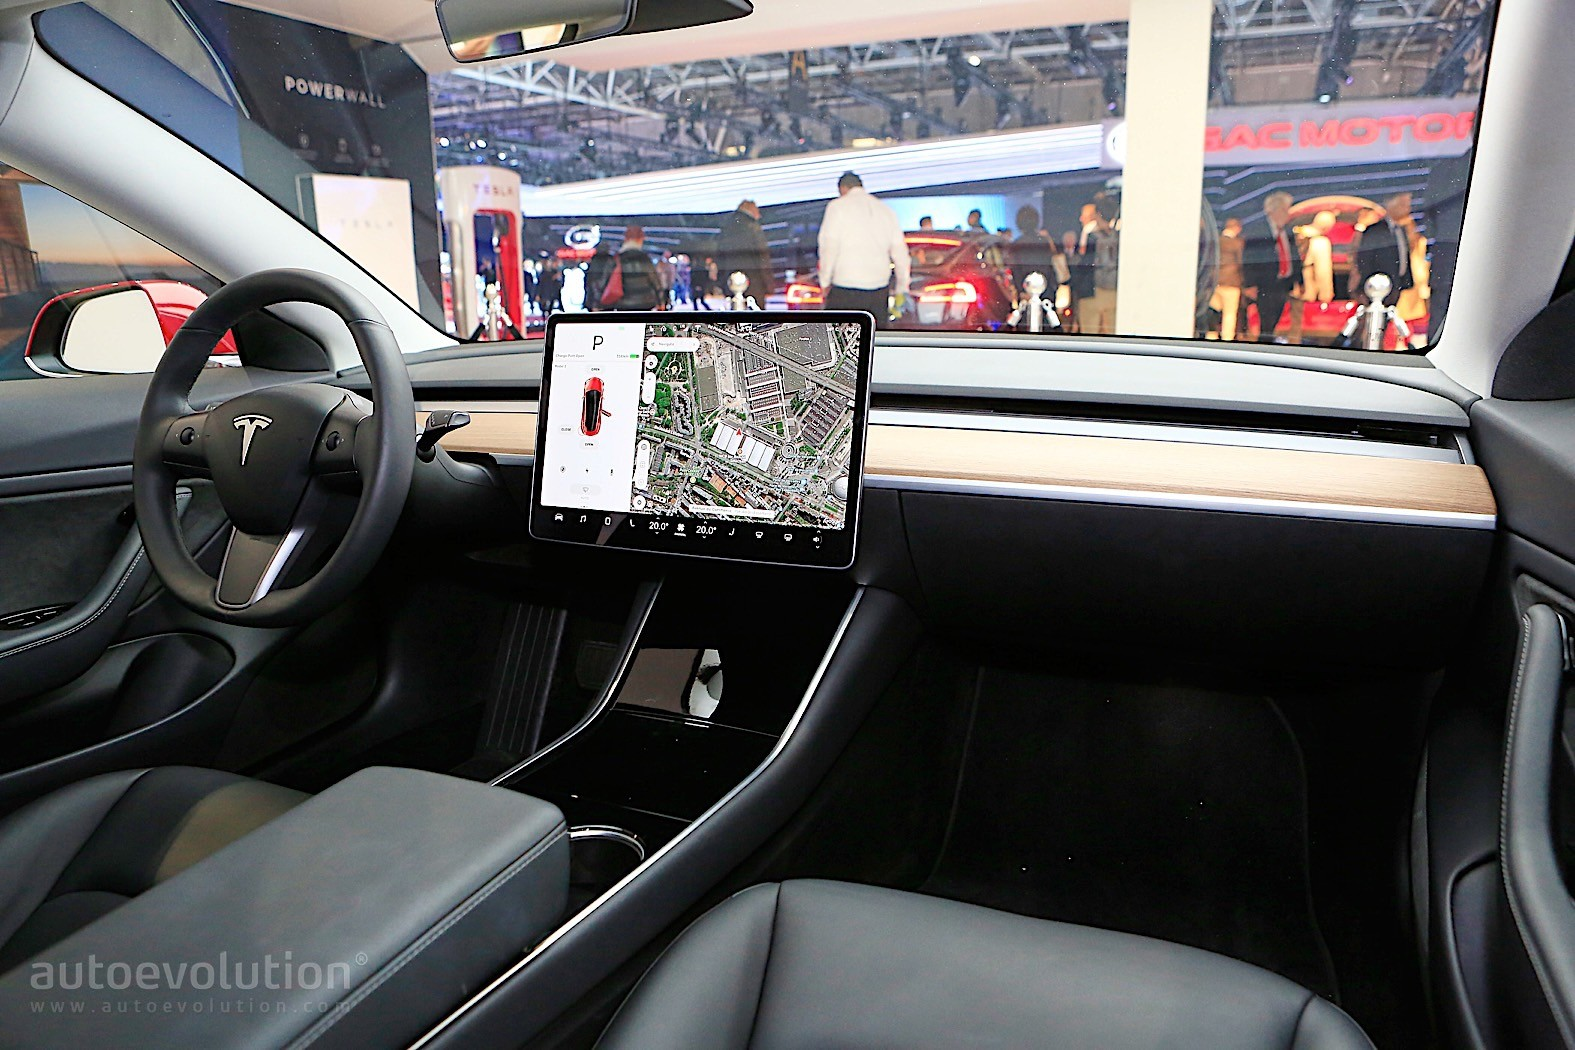 Atari Video Games Introduced To Tesla Models By Software ...